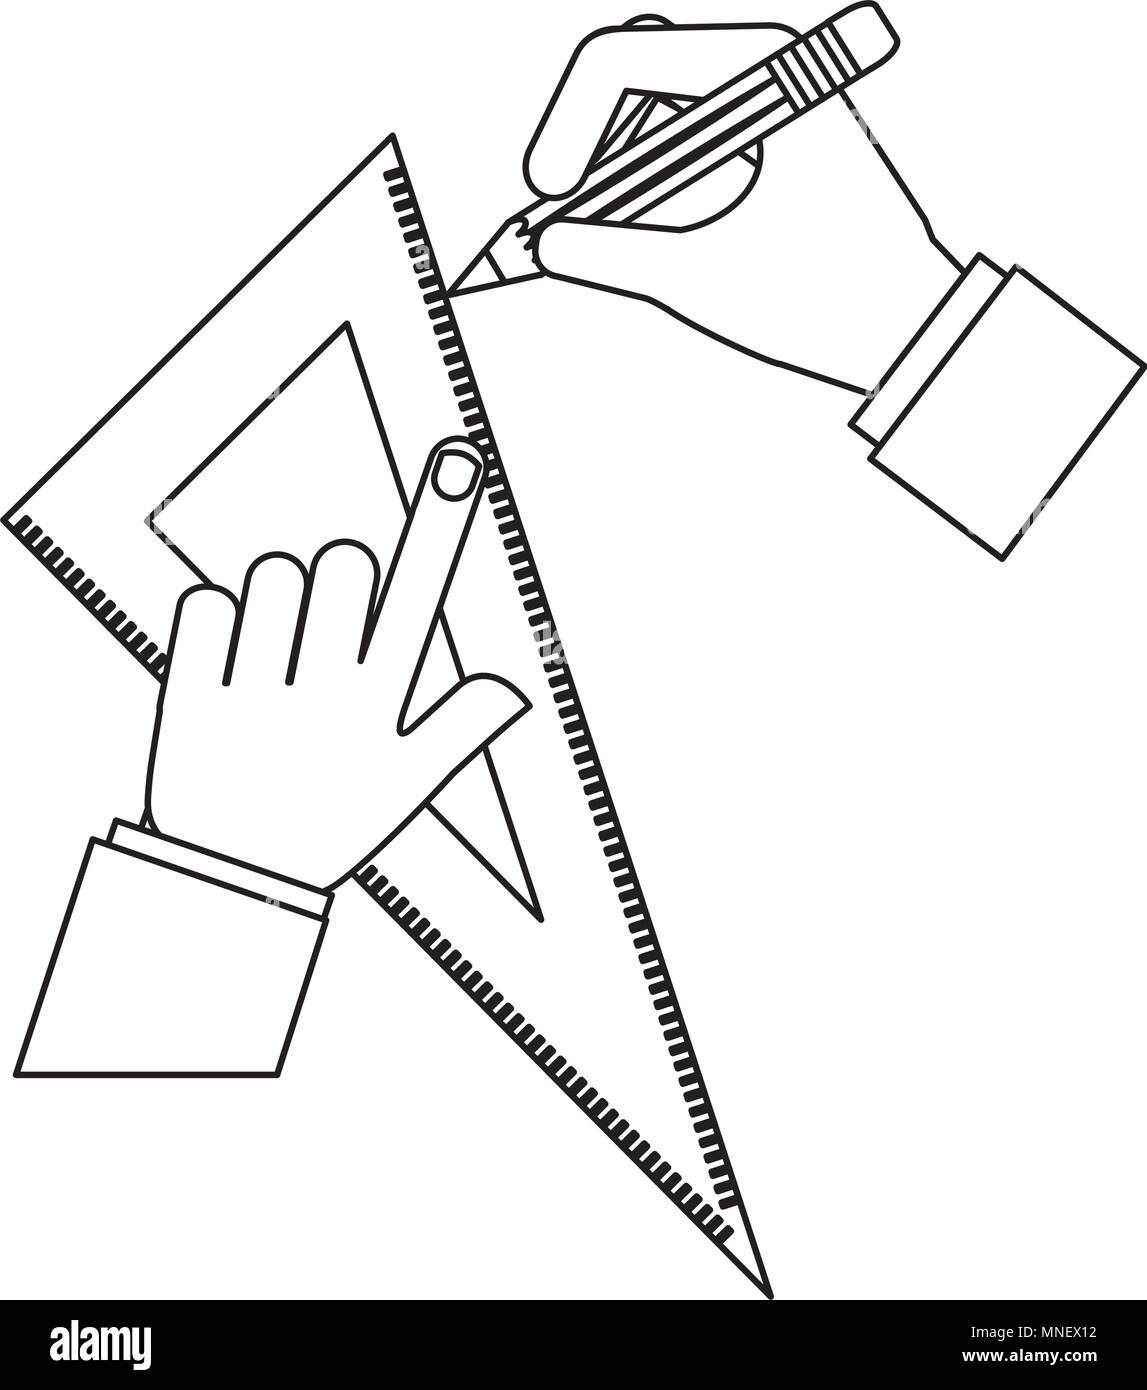 Architect Or Designer Hands With Pencil And Ruler Triangle